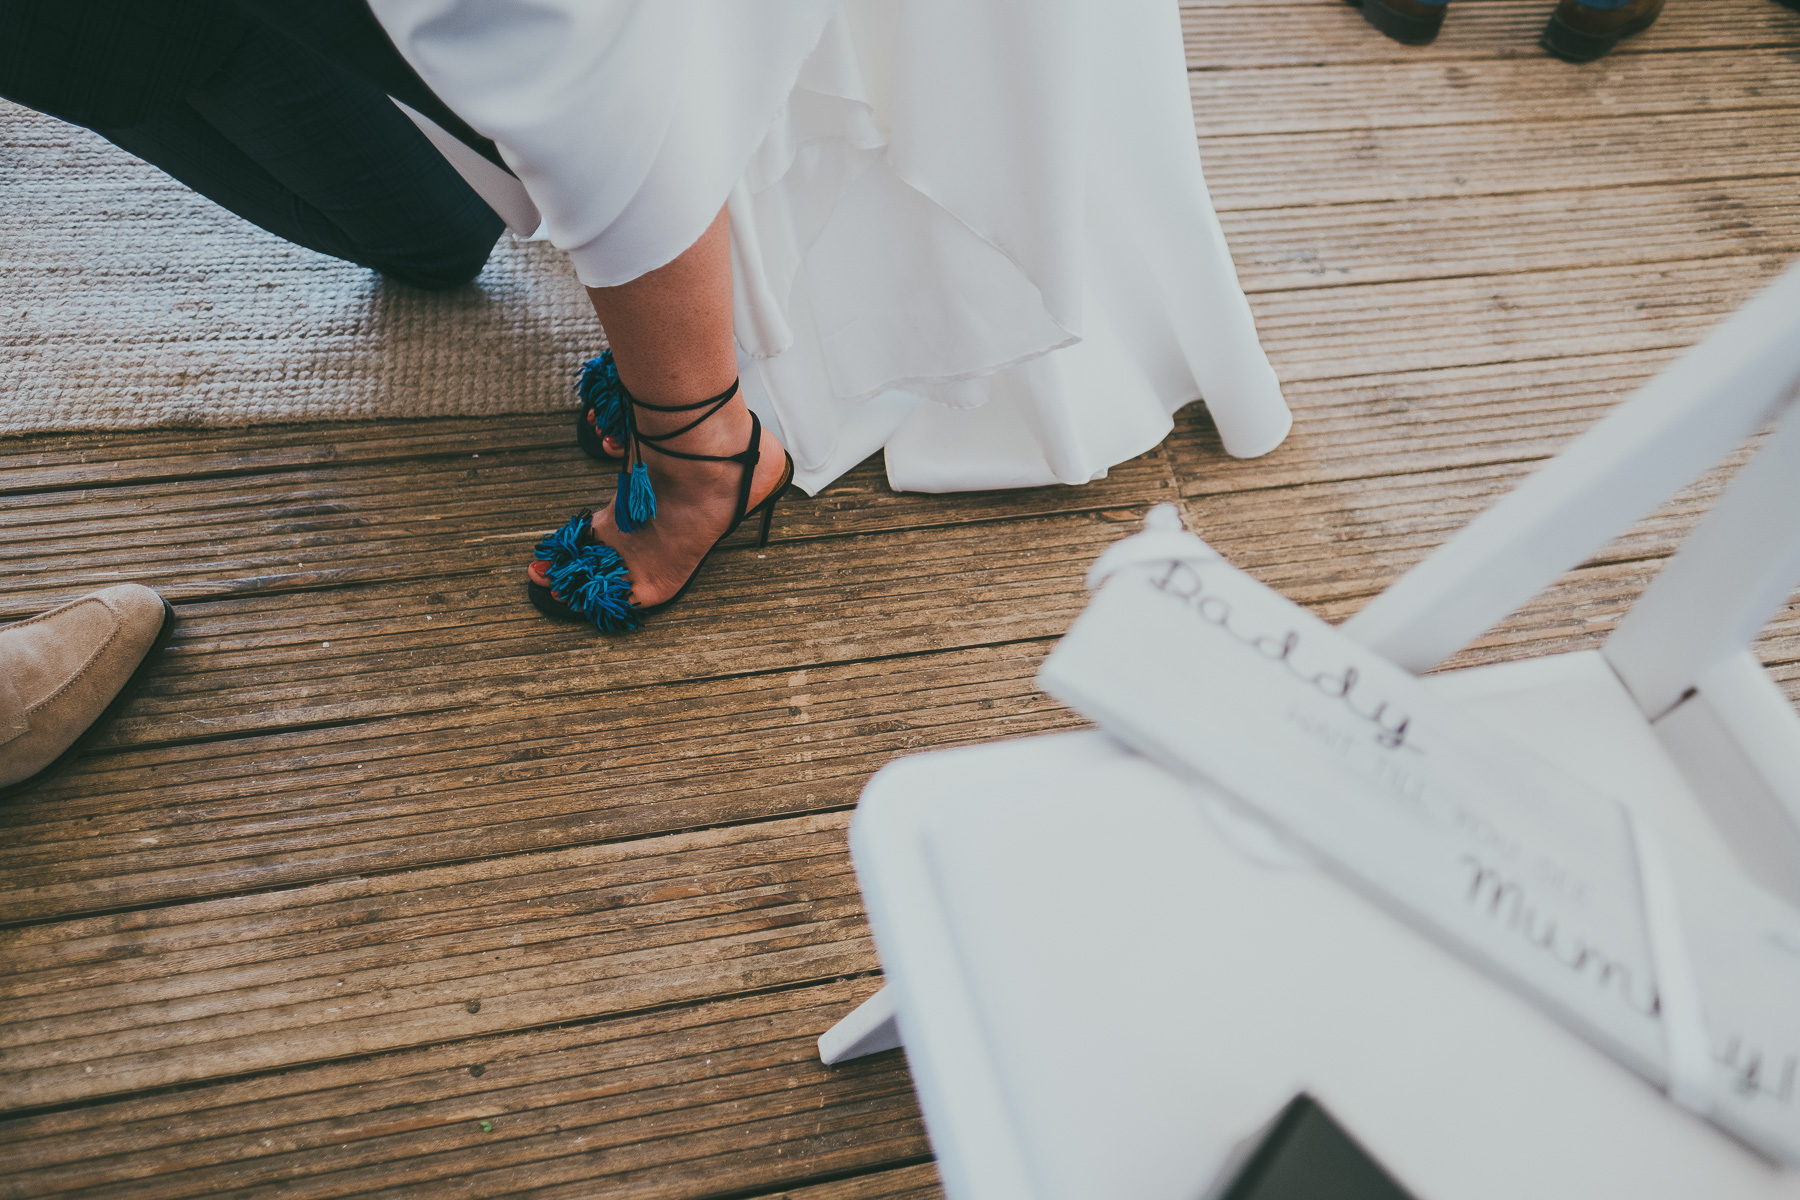 She was rocking cool blue pompom and tassel shoes with lacing up